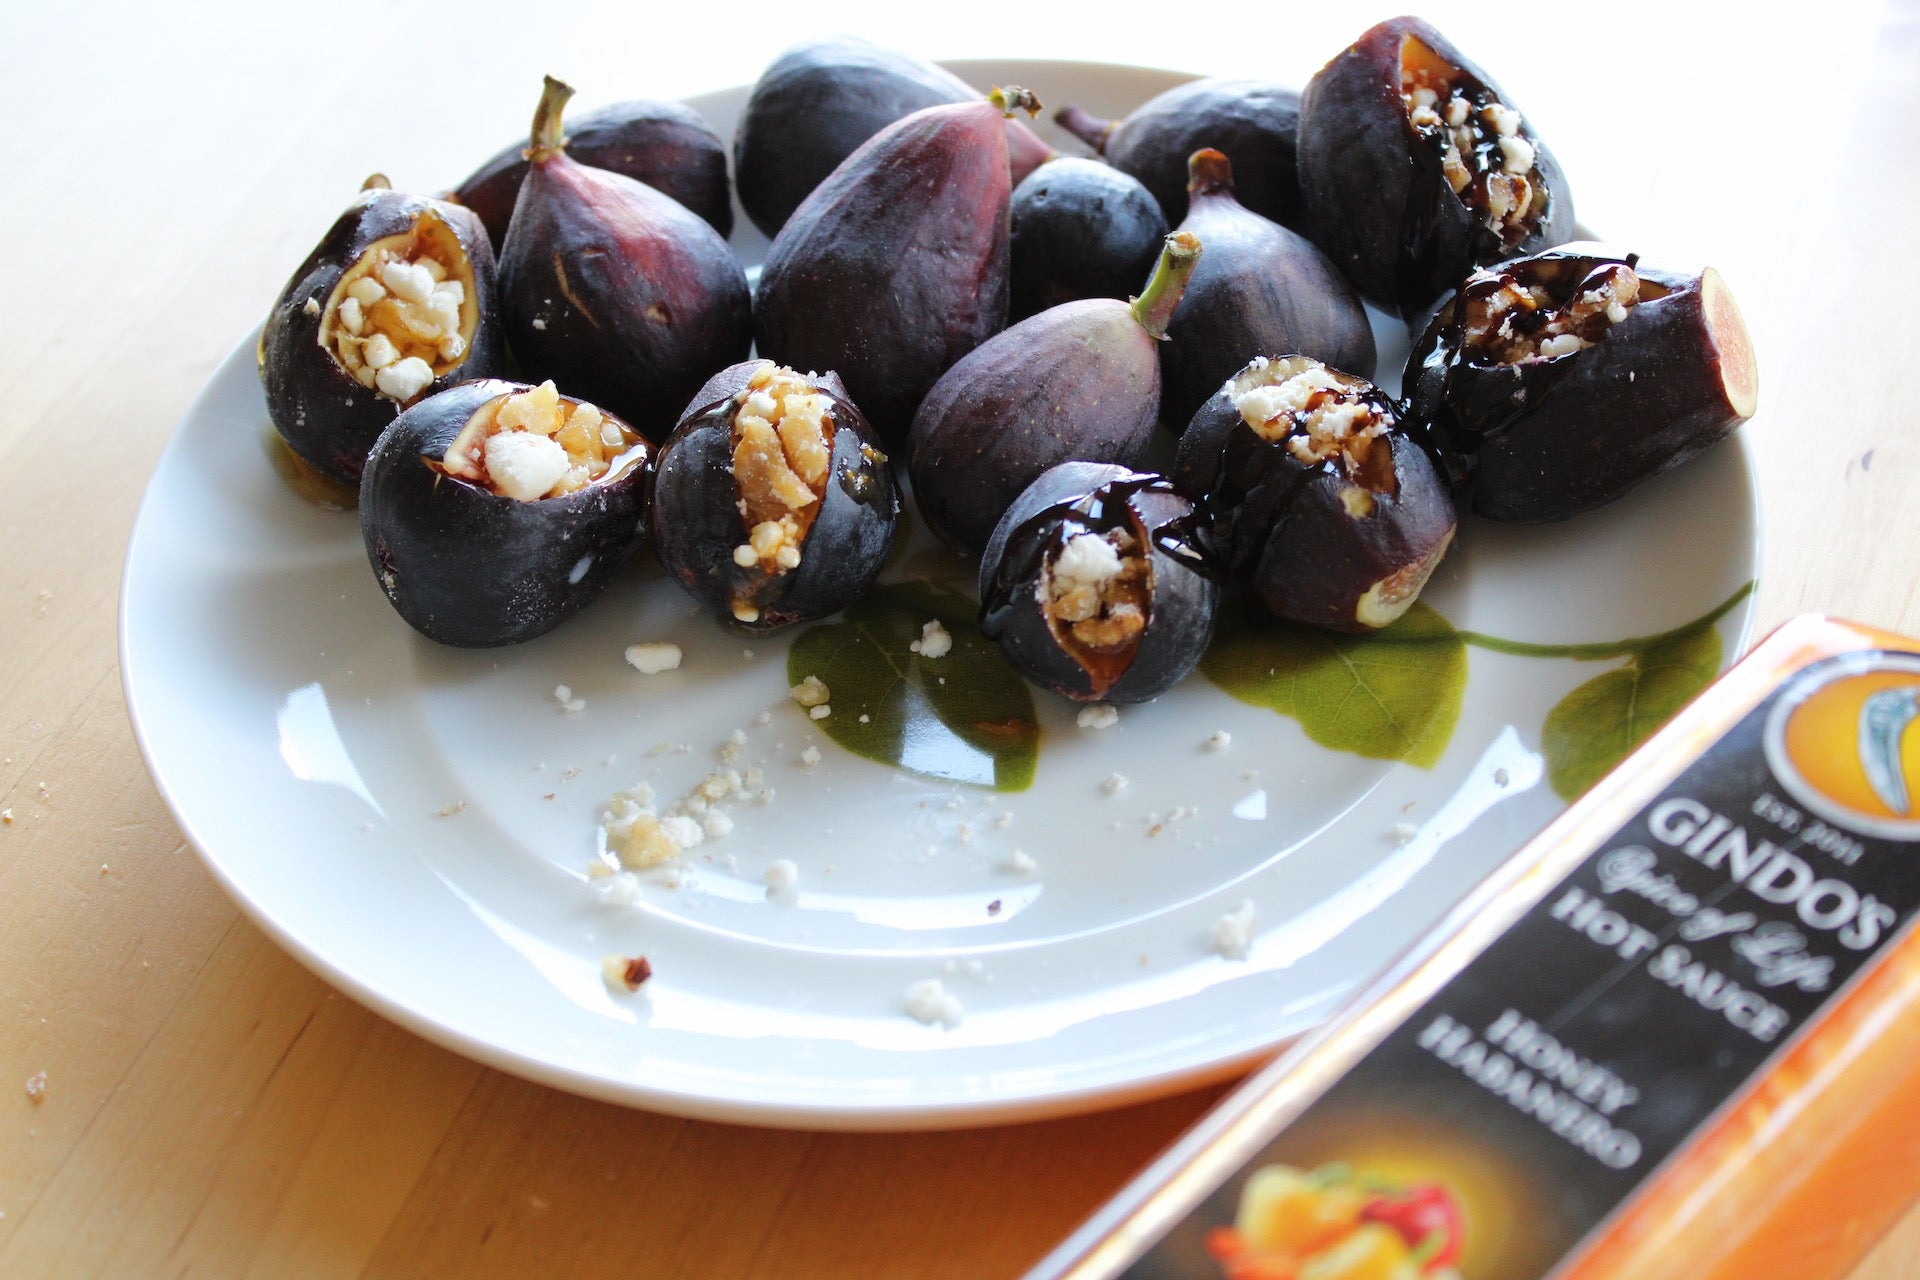 Gindo's Loaded Figs